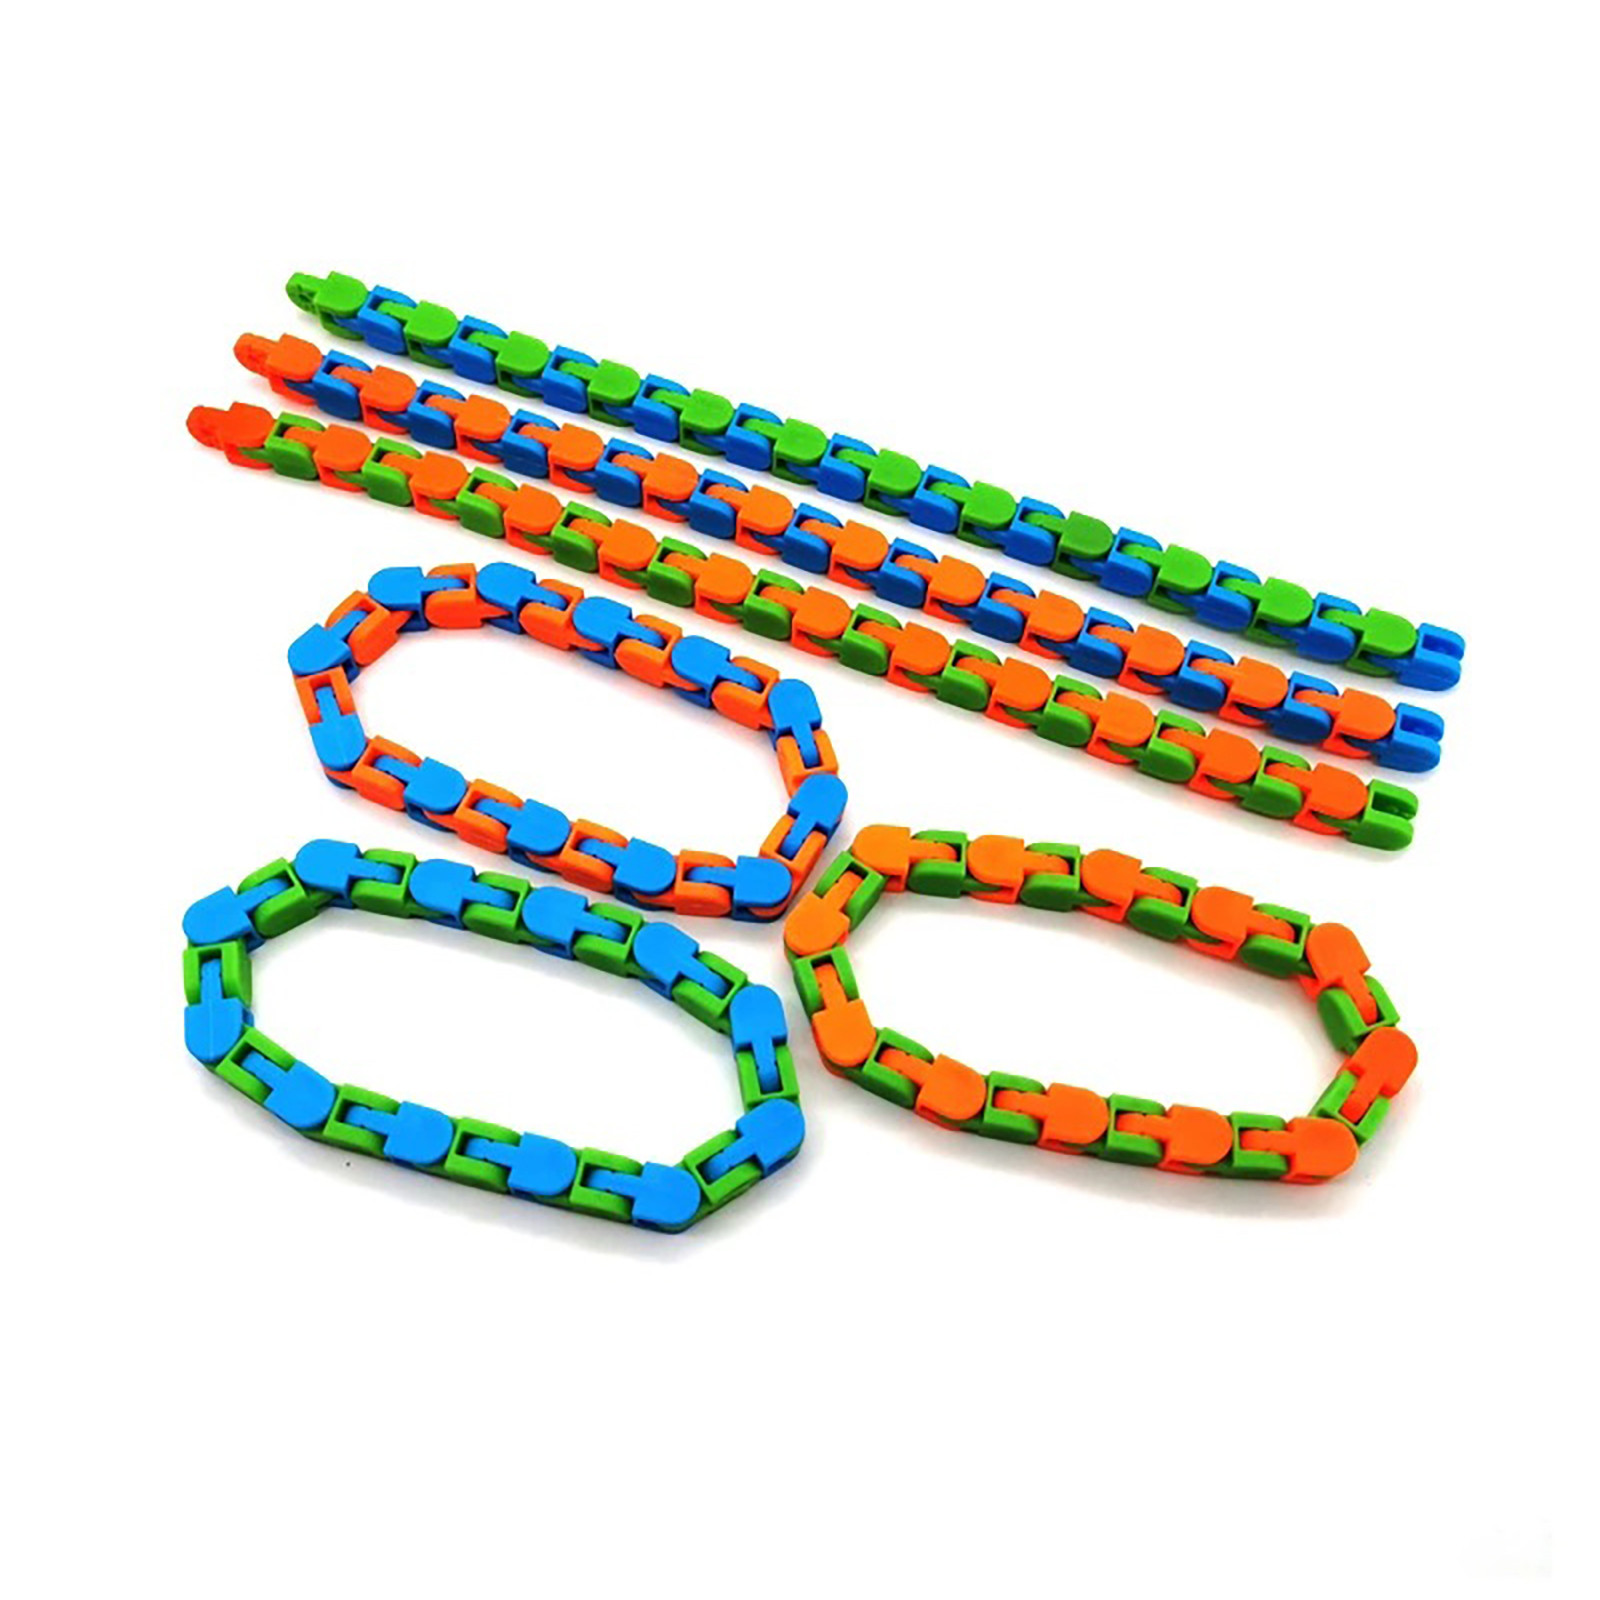 Toys Colorful Puzzle Sensory Tracks Snap And Click Fidget Toys Kids Fidget Toys Stress Relief Rotate And Shape 24bit Wacky img5